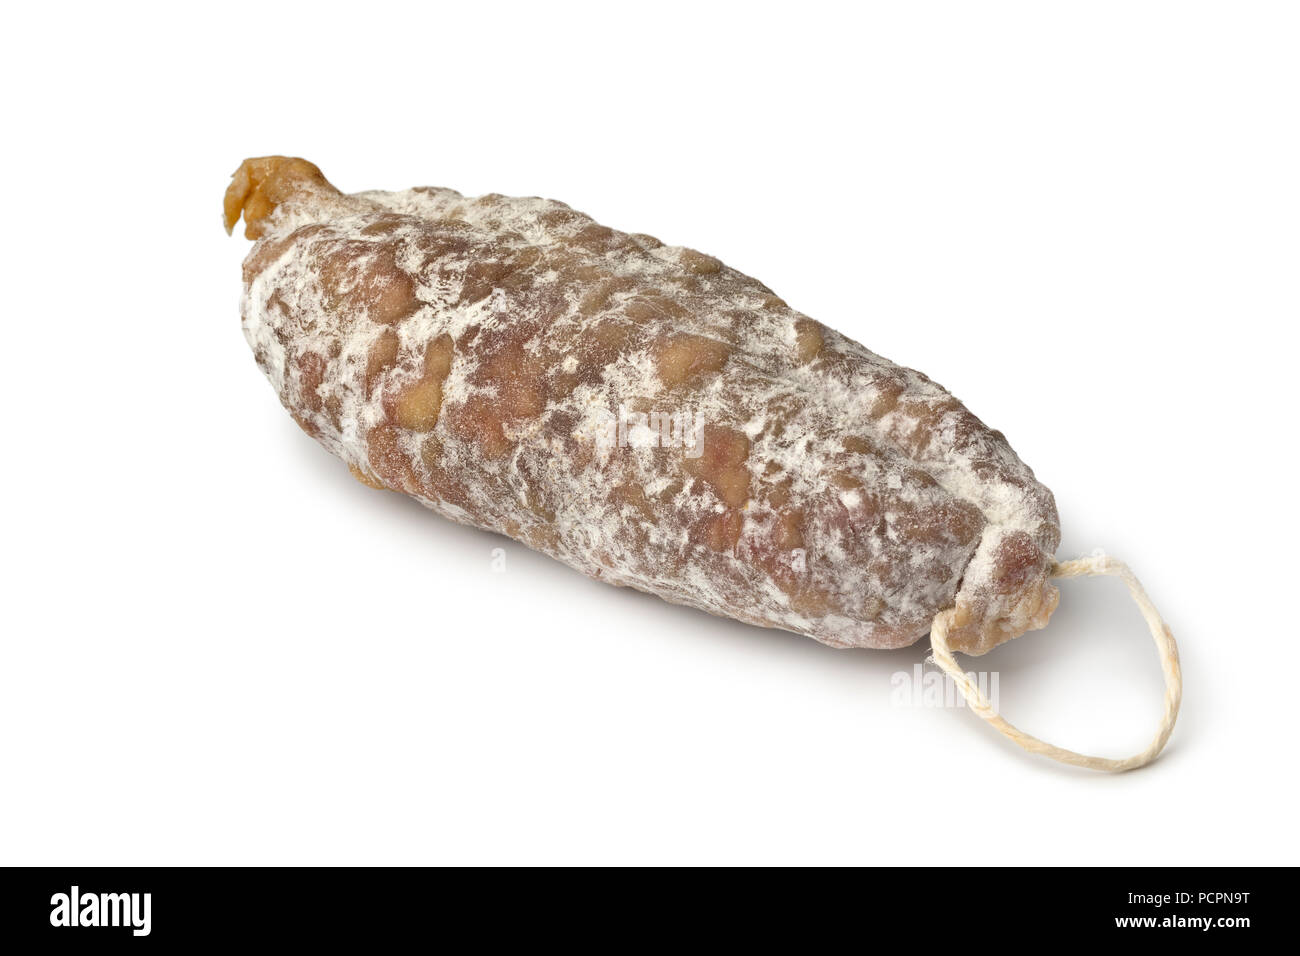 French saucisson sec isolated on white background - Stock Image